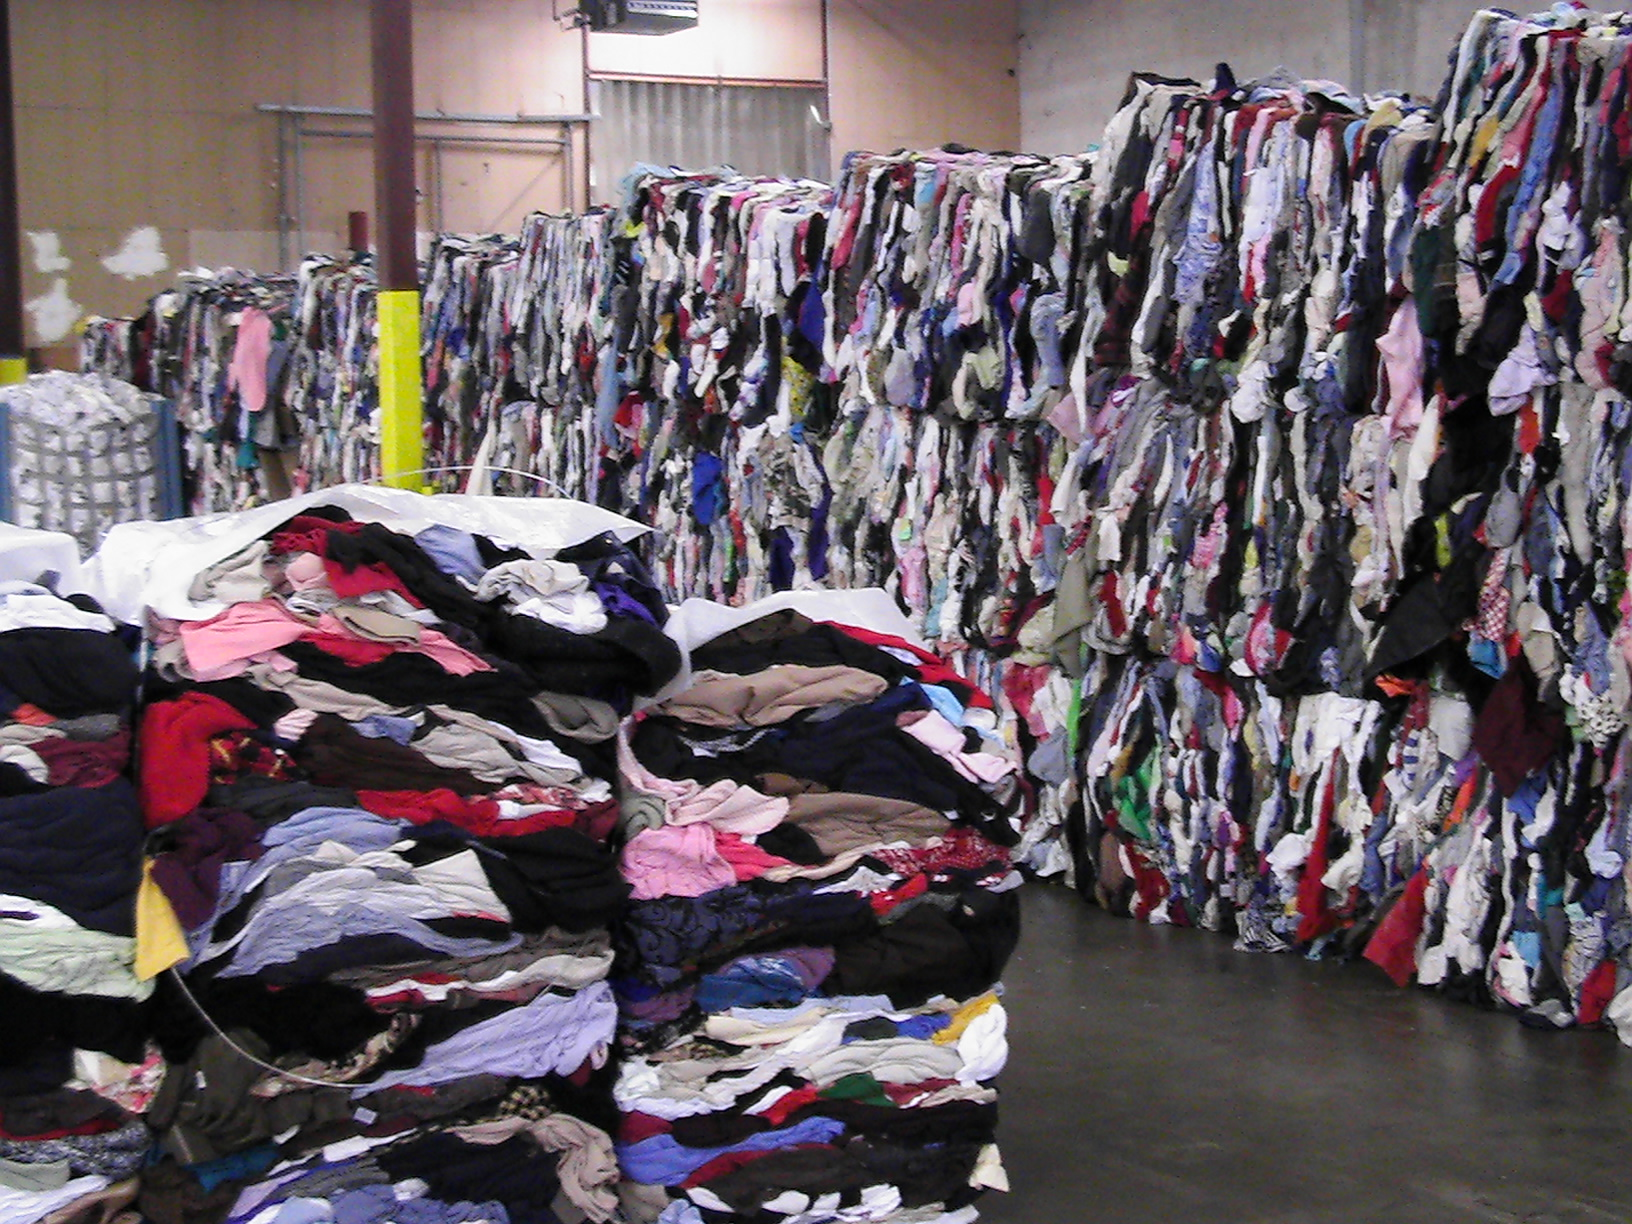 Recycling clothing and textiles benefits charities, reduces solid waste, and provides employment to Texans. When Americans recycle their unwanted clothing and textiles, it provides three main benefits: funds charitable programs, reduces solid waste, and provides economic stimulus and .